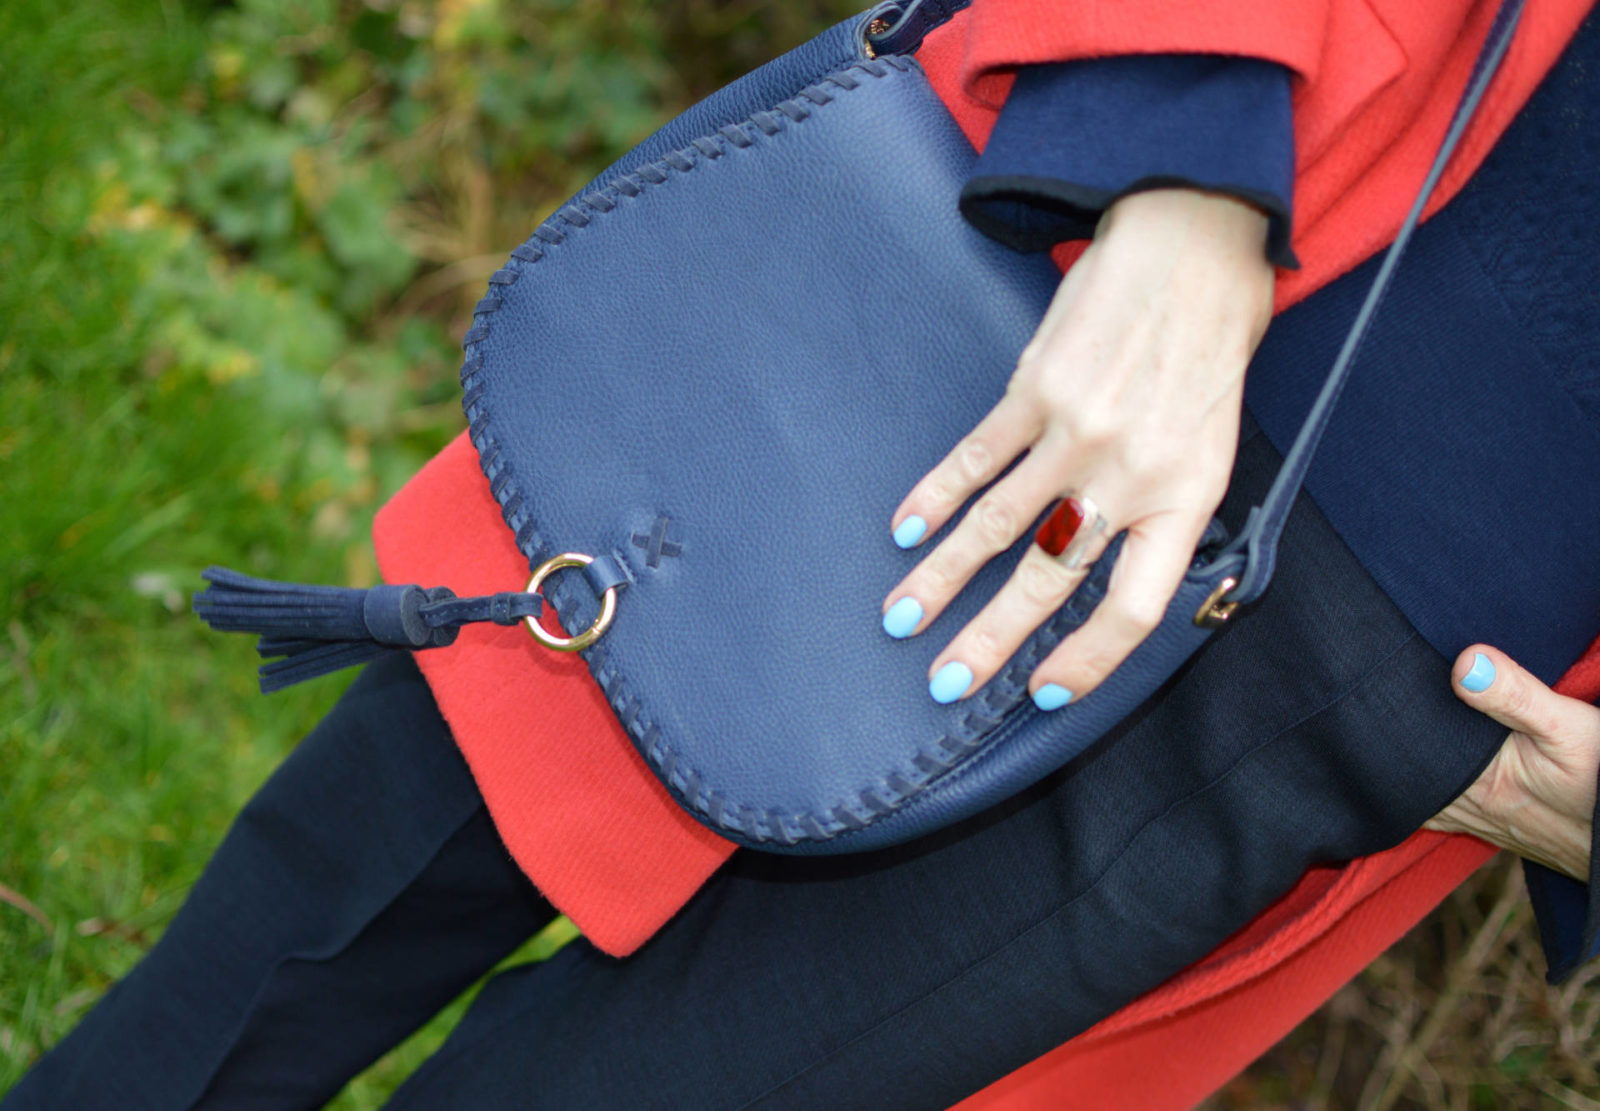 Classic navy trousers and sweater with a red coat, Laura Ashley navy tassel bag